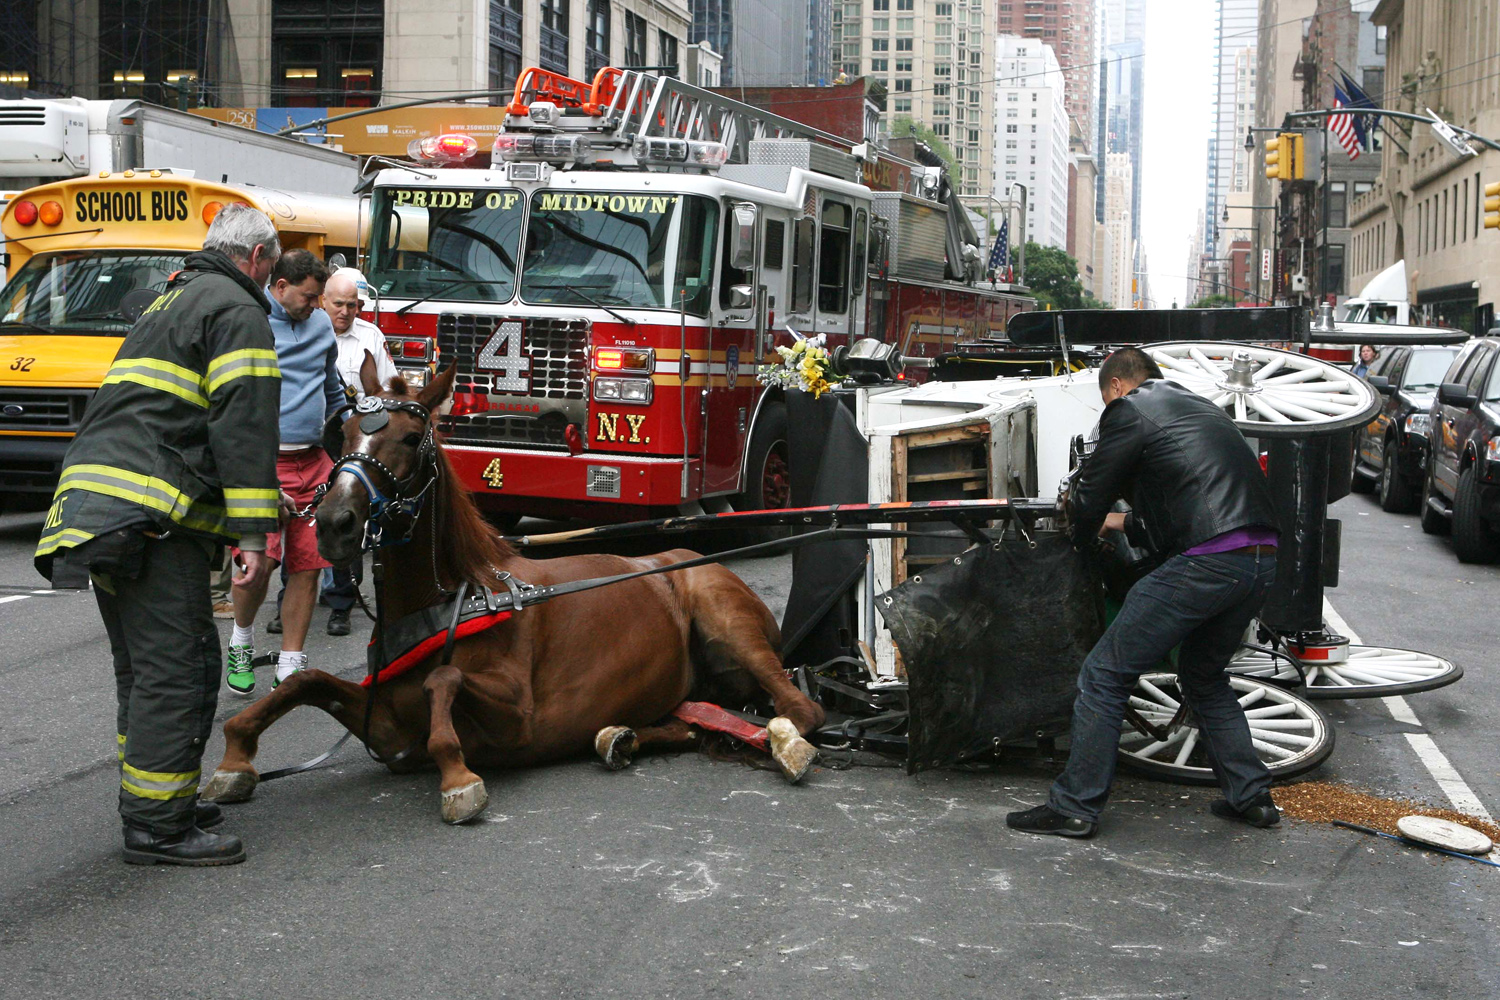 Drawn horse new york In ground Horses carriage of